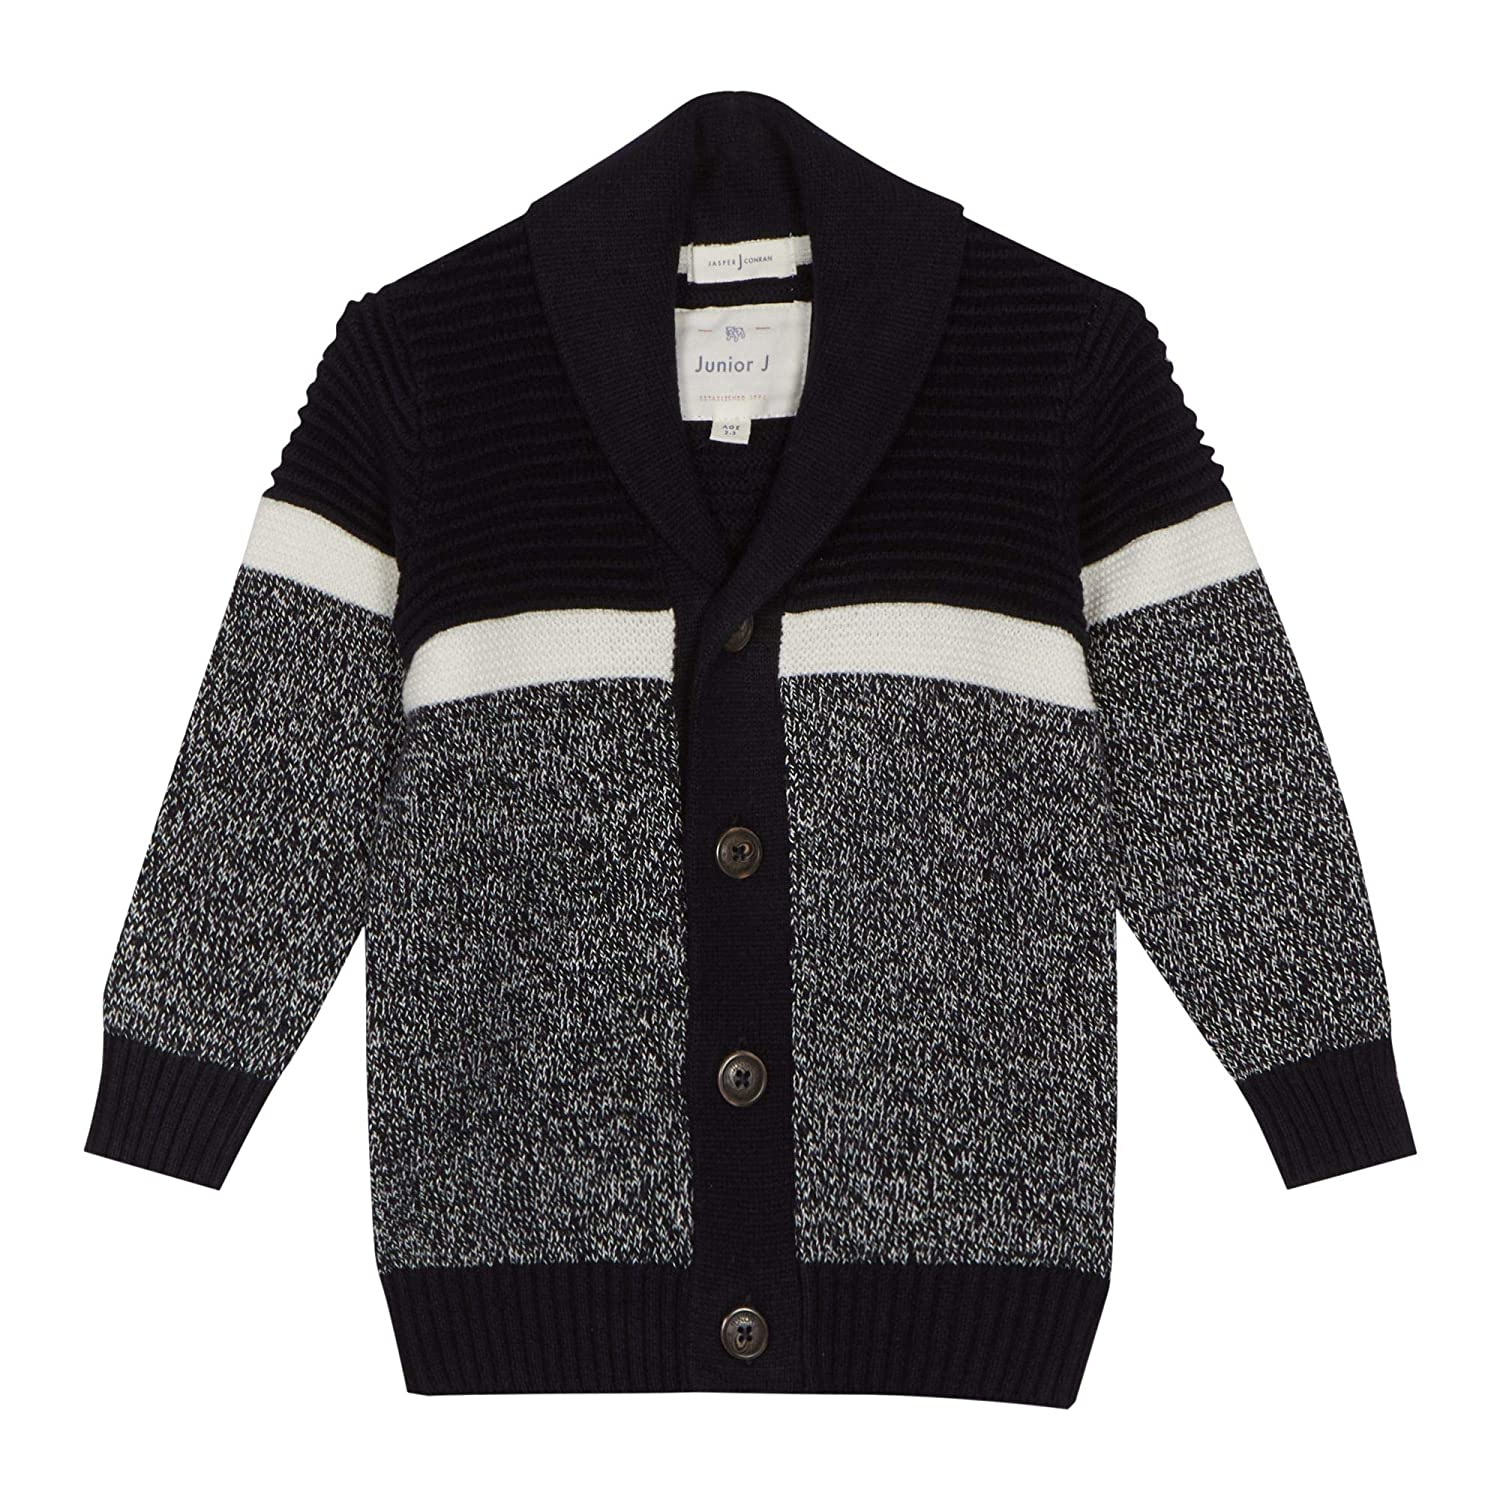 J by Jasper Conran Kids Boys' Navy Knit Cardigan